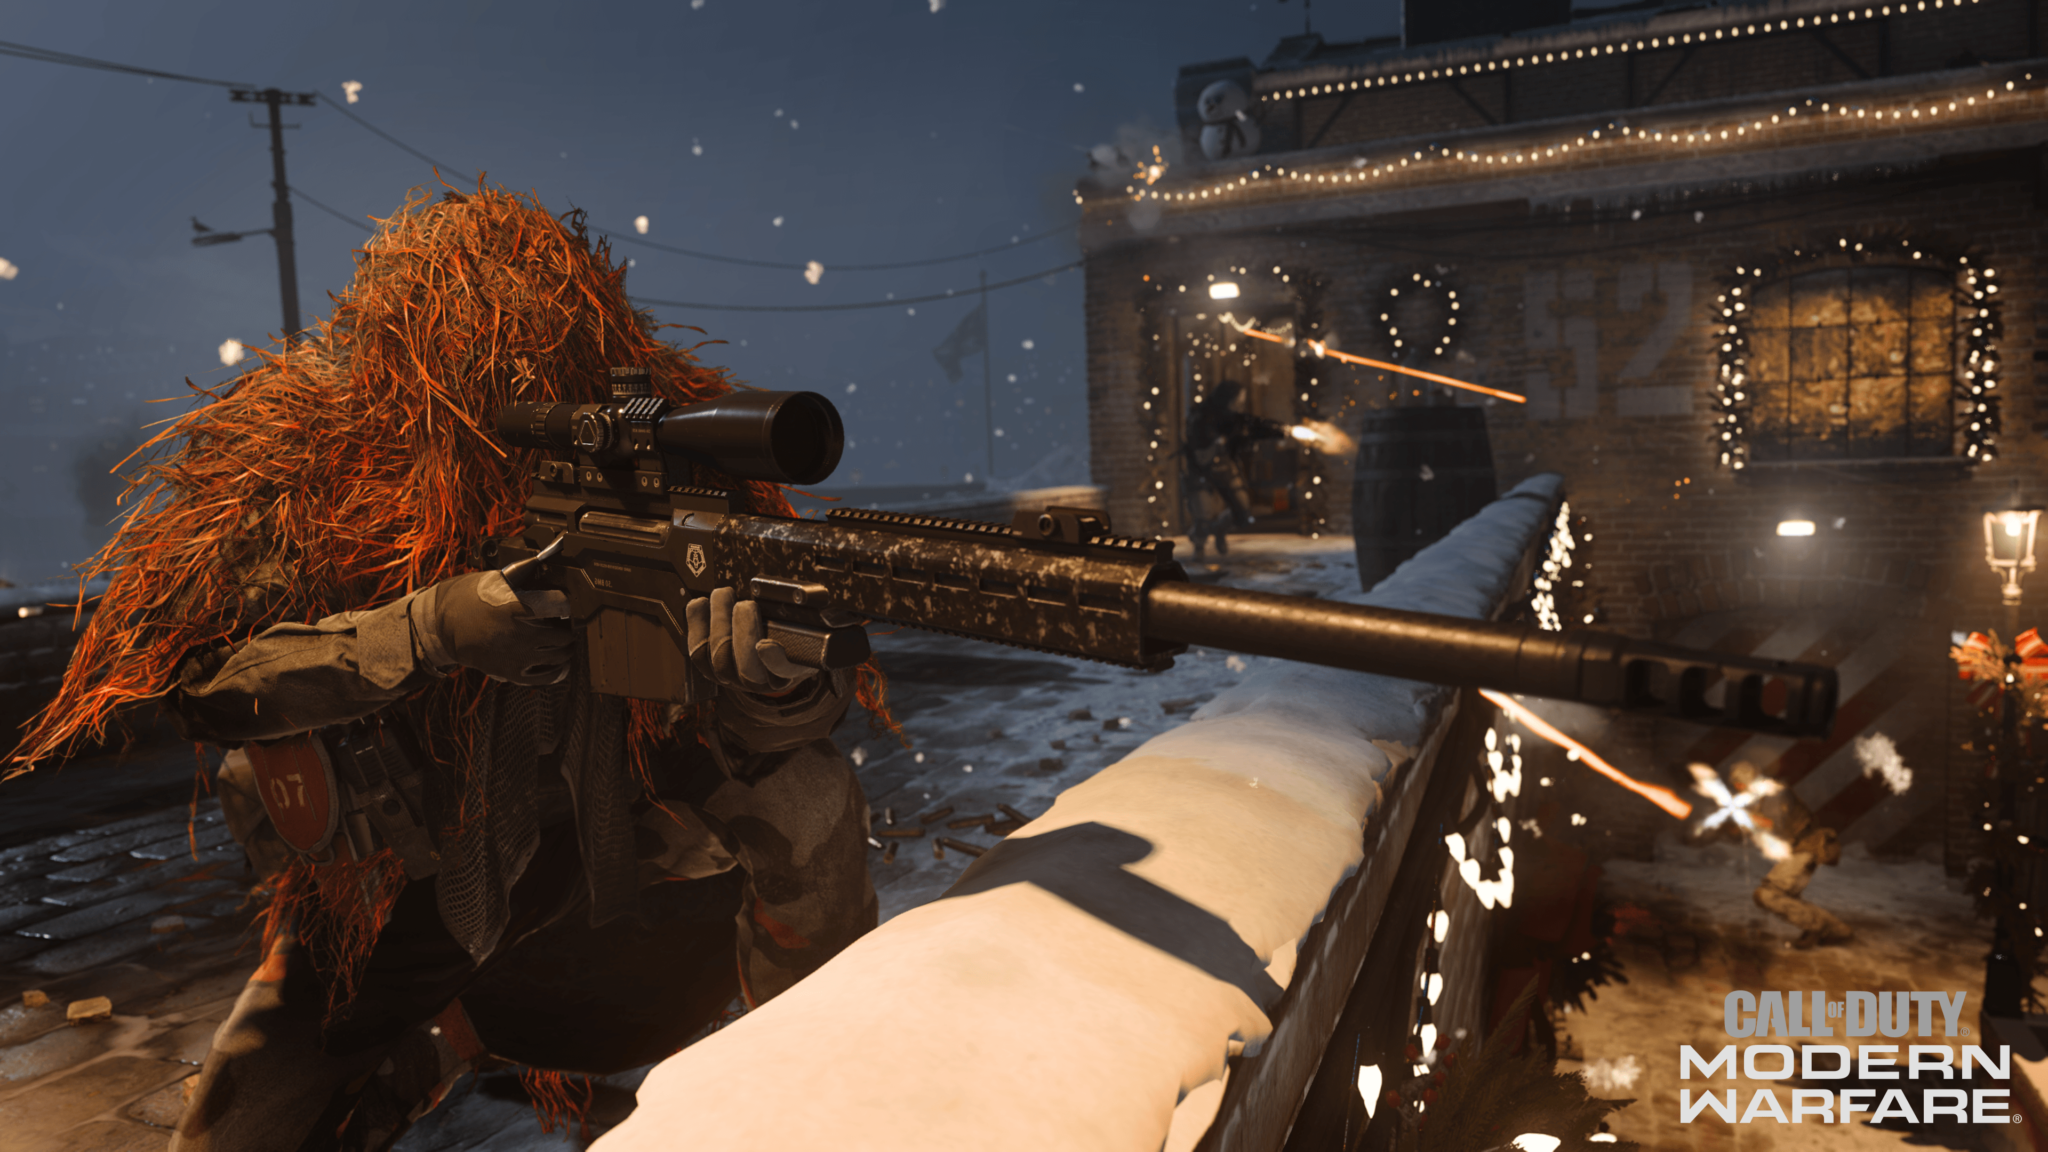 A sniper scropes in on a Warzone map